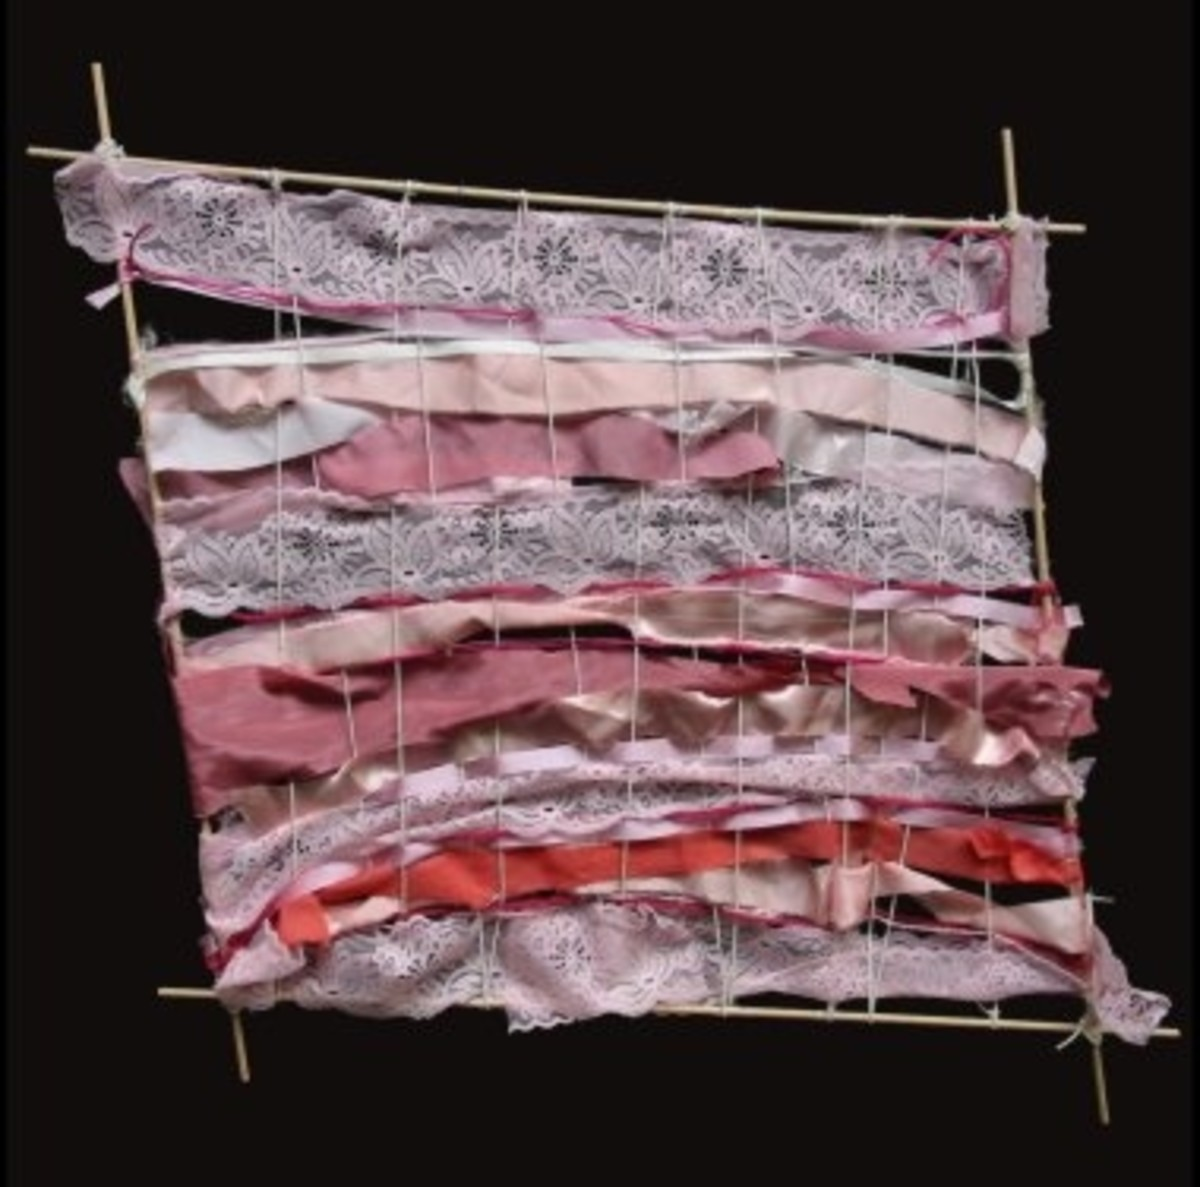 Piecing Together a New Life (Weaving)